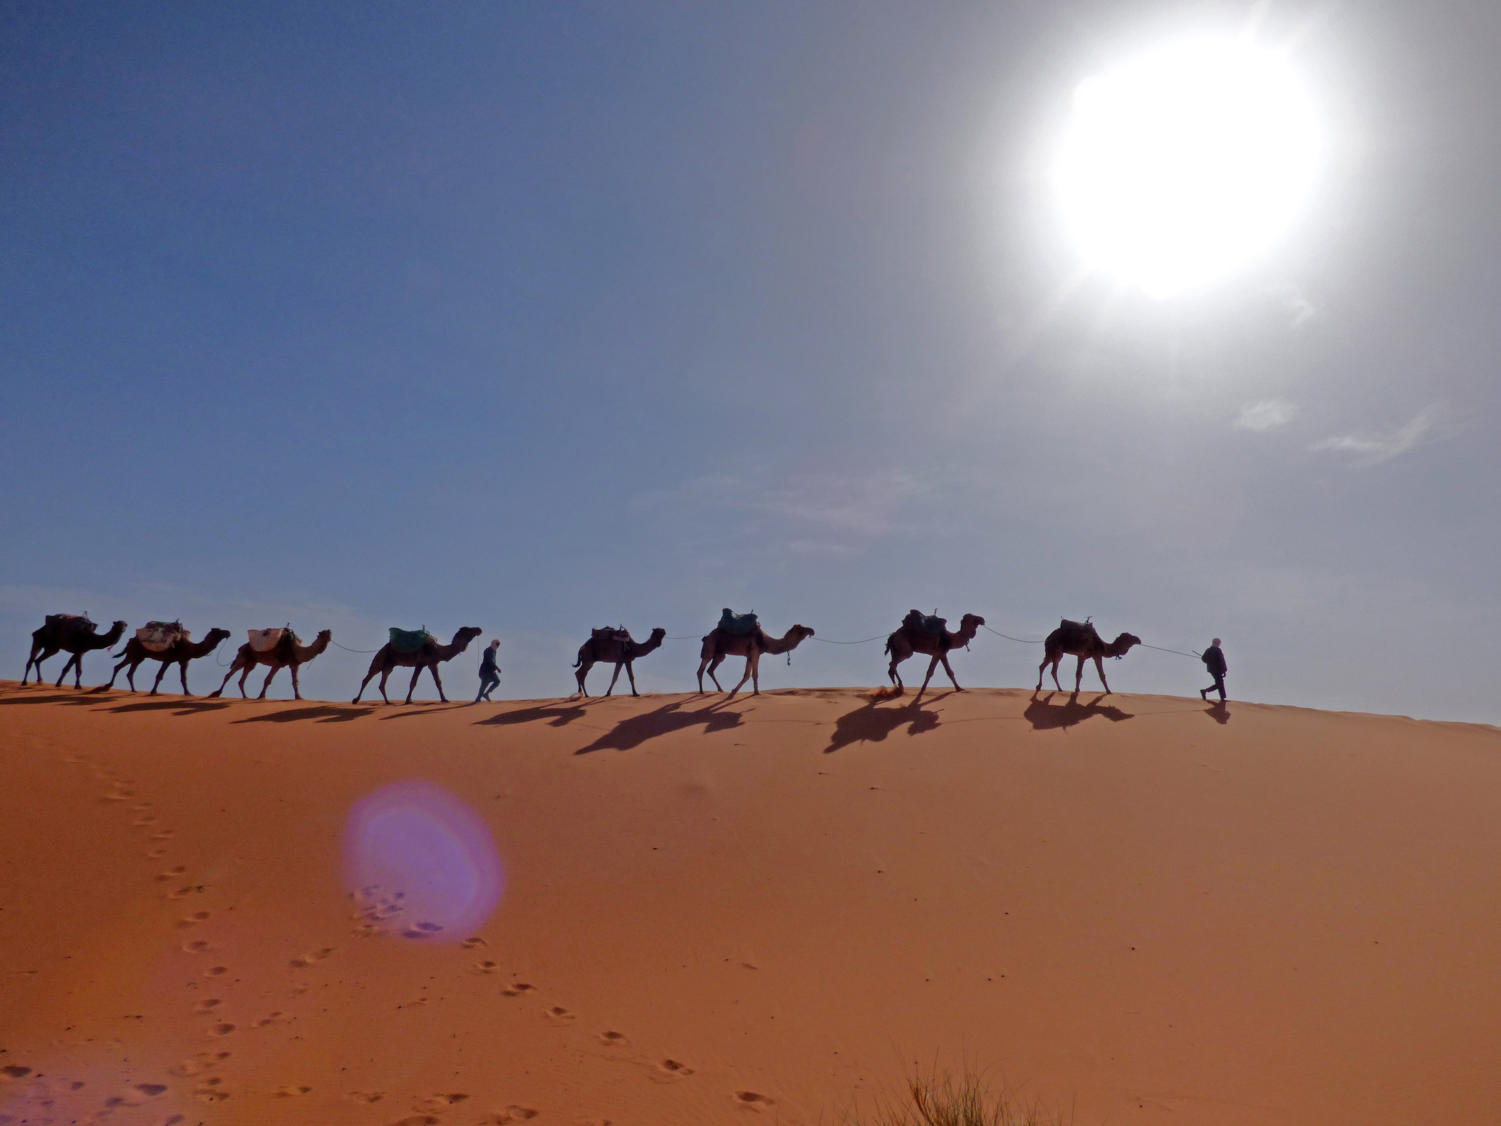 Renewable forms of energy like wind farms can change the climate more directly - including more rain over the Sahara. (Terri Colby/Chicago Tribune/TNS)